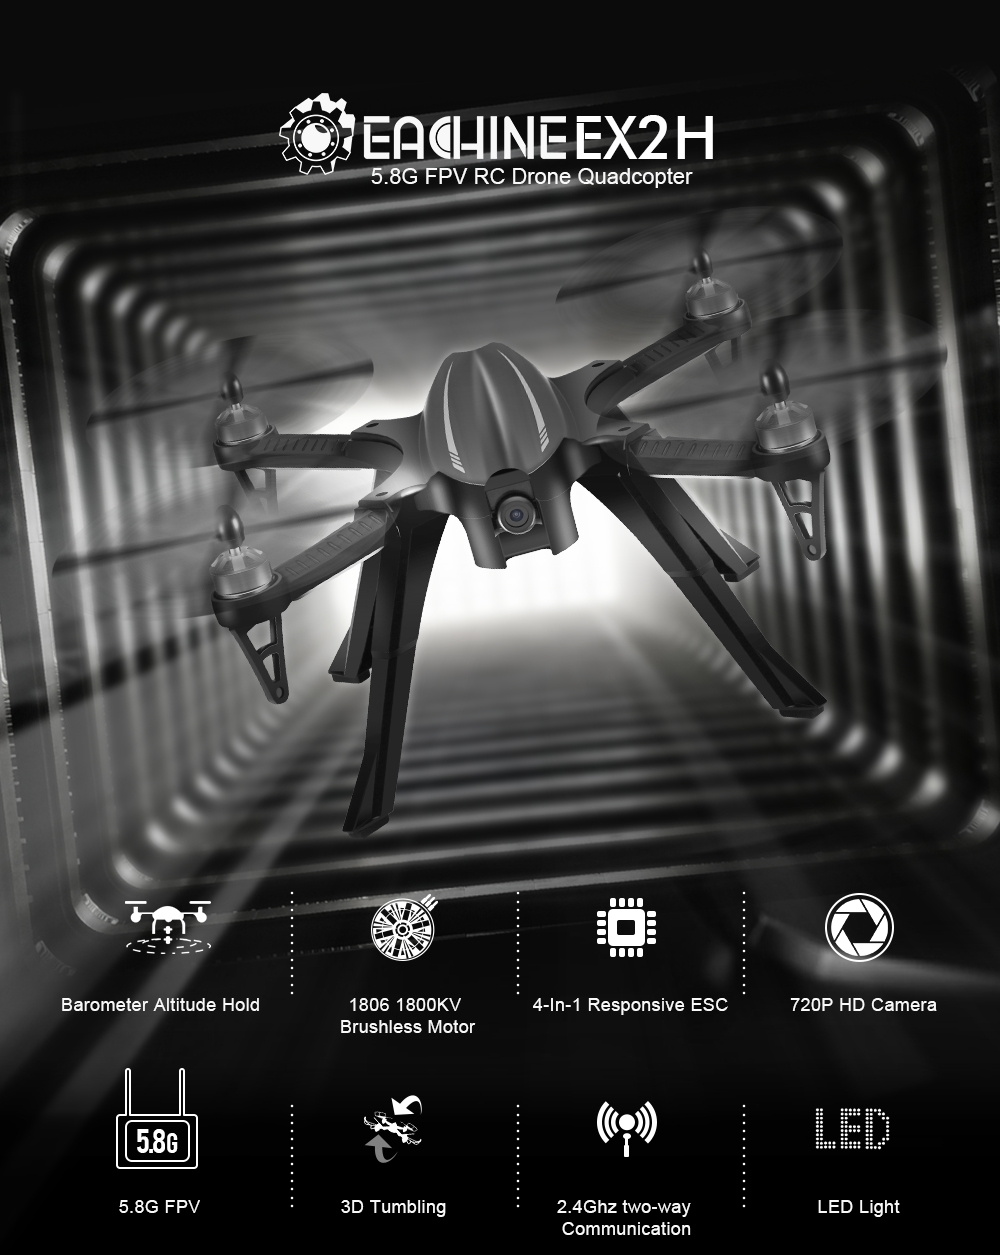 Eachine EX2H Brushless 5.8G FPV With 720P HD Camera Alititude Hold RC Drone Quadcopter RTF